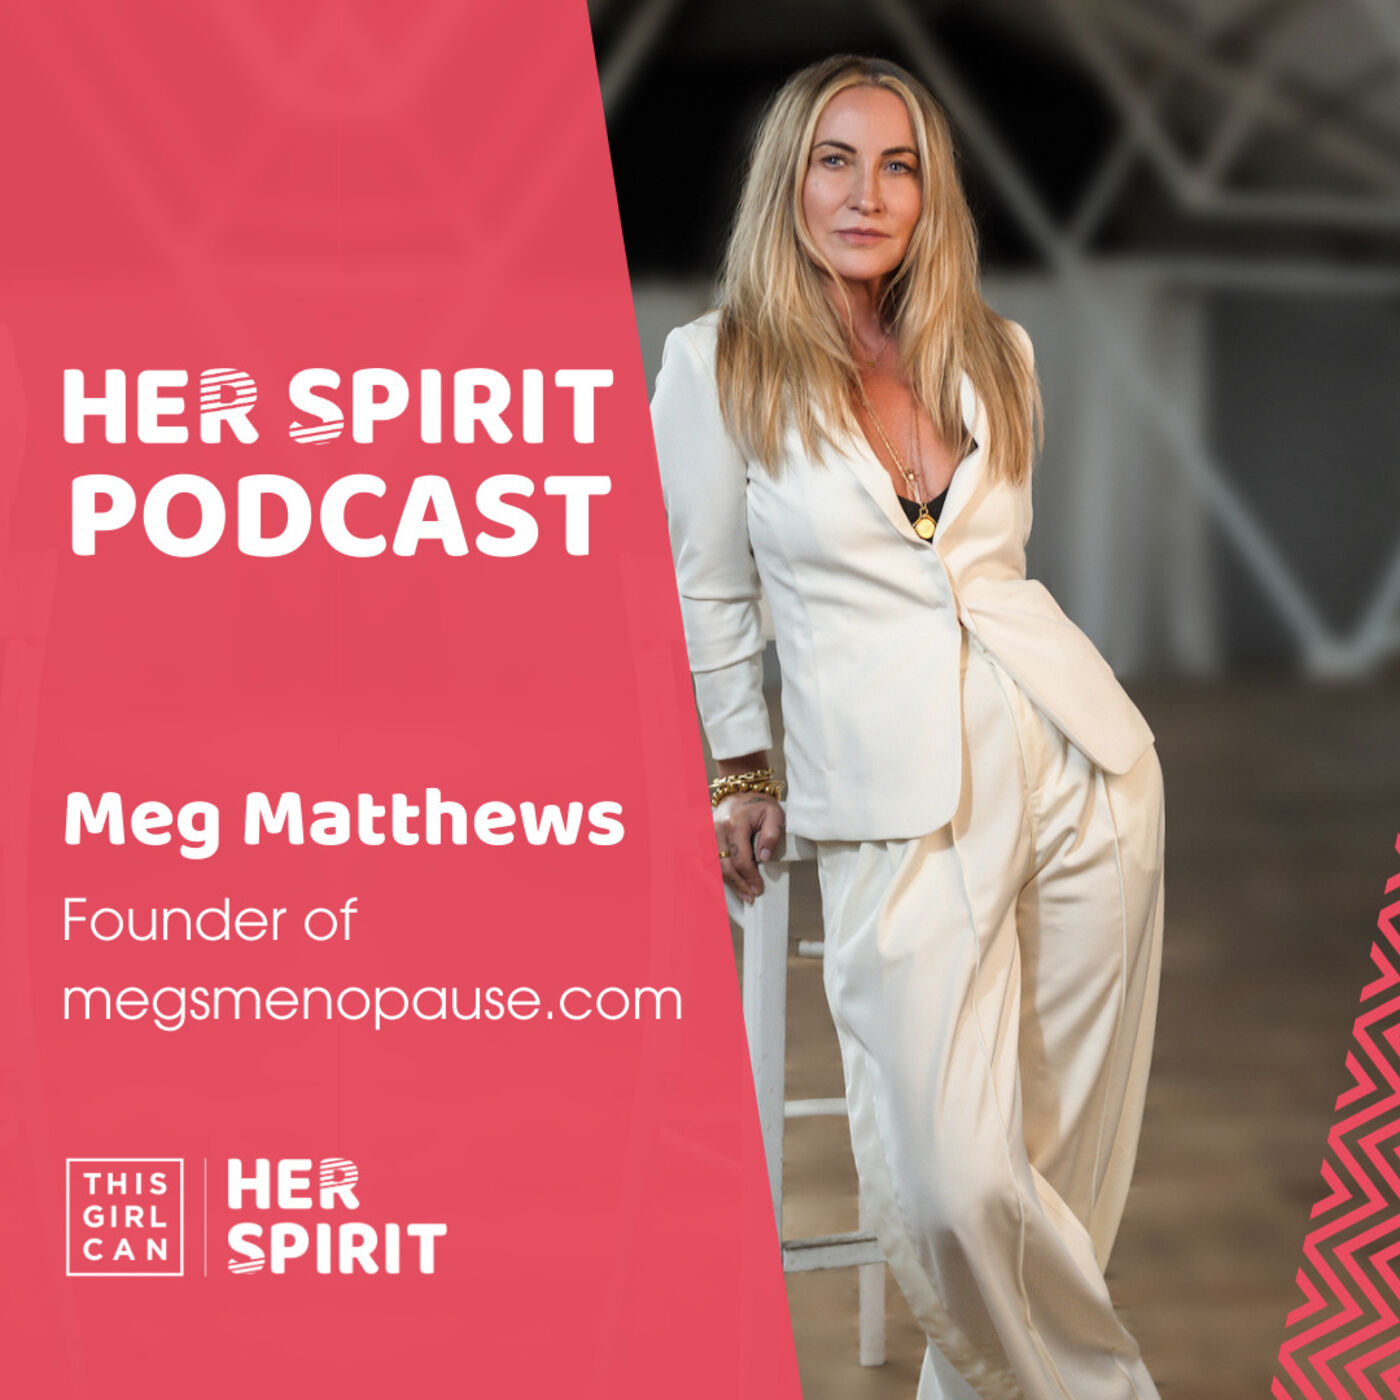 Meg Matthews talks to Annie and Louise about the 80's & 90's Brit Pop scene, her love of cold water swimming and how it helps her anxiety levels and overall wellbeing, and her menopause journey